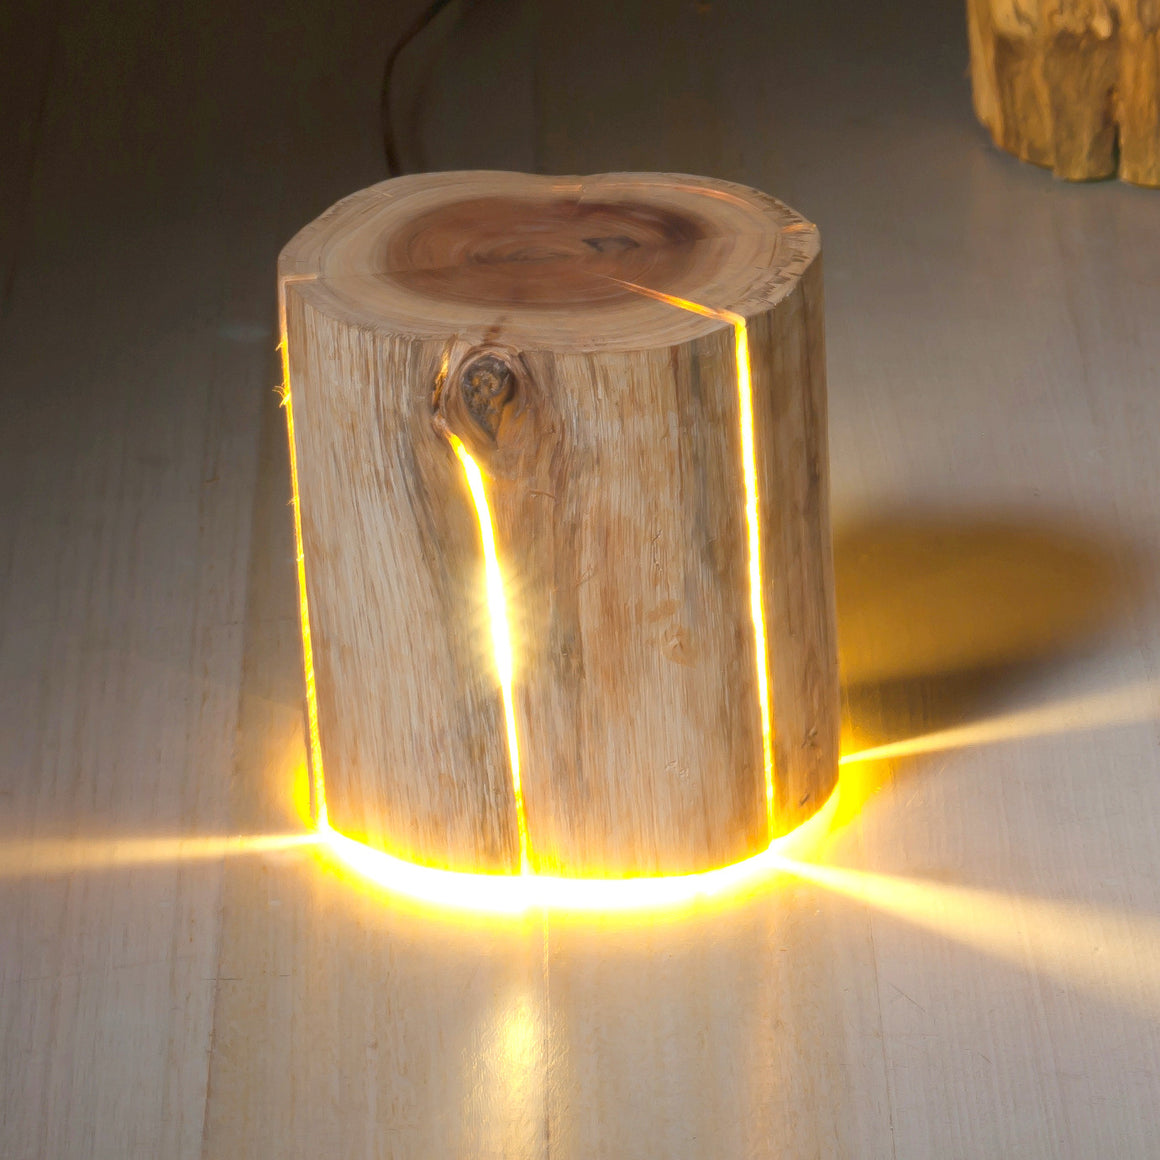 Cracked Log Lamp by designer Duncan Meerding